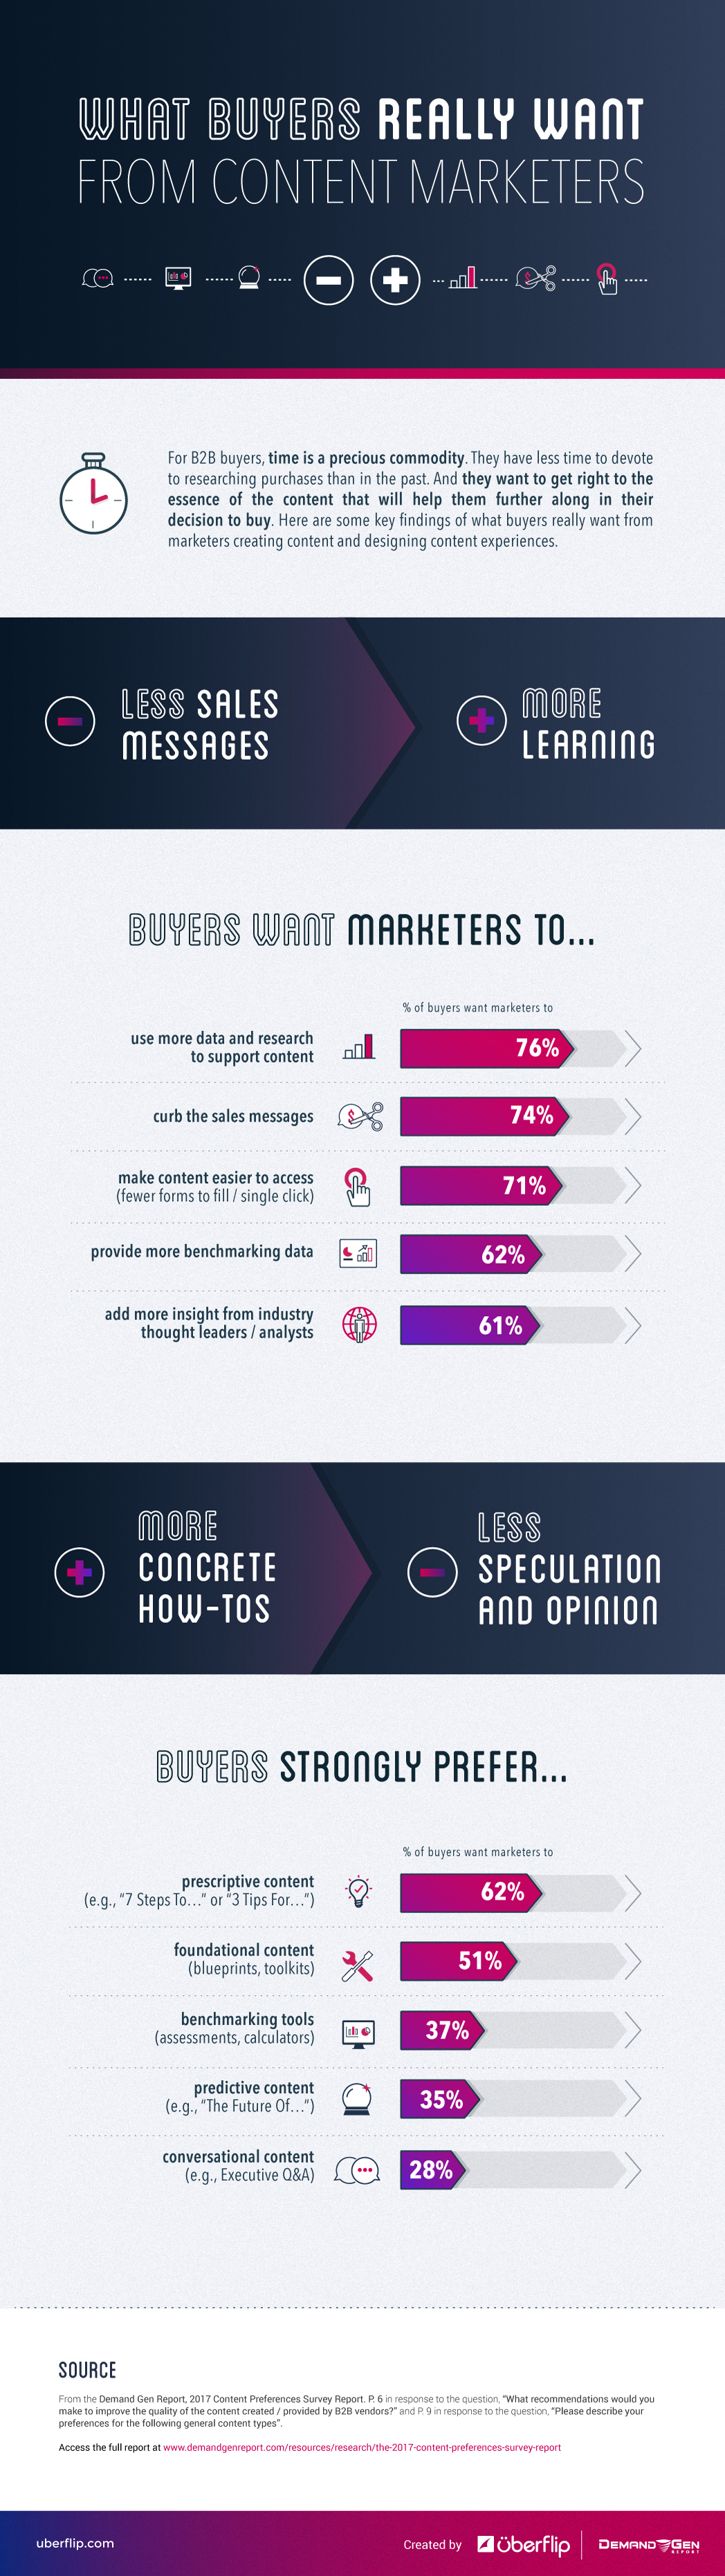 What Buyers Really Want From Marketers Uberflip Infographic